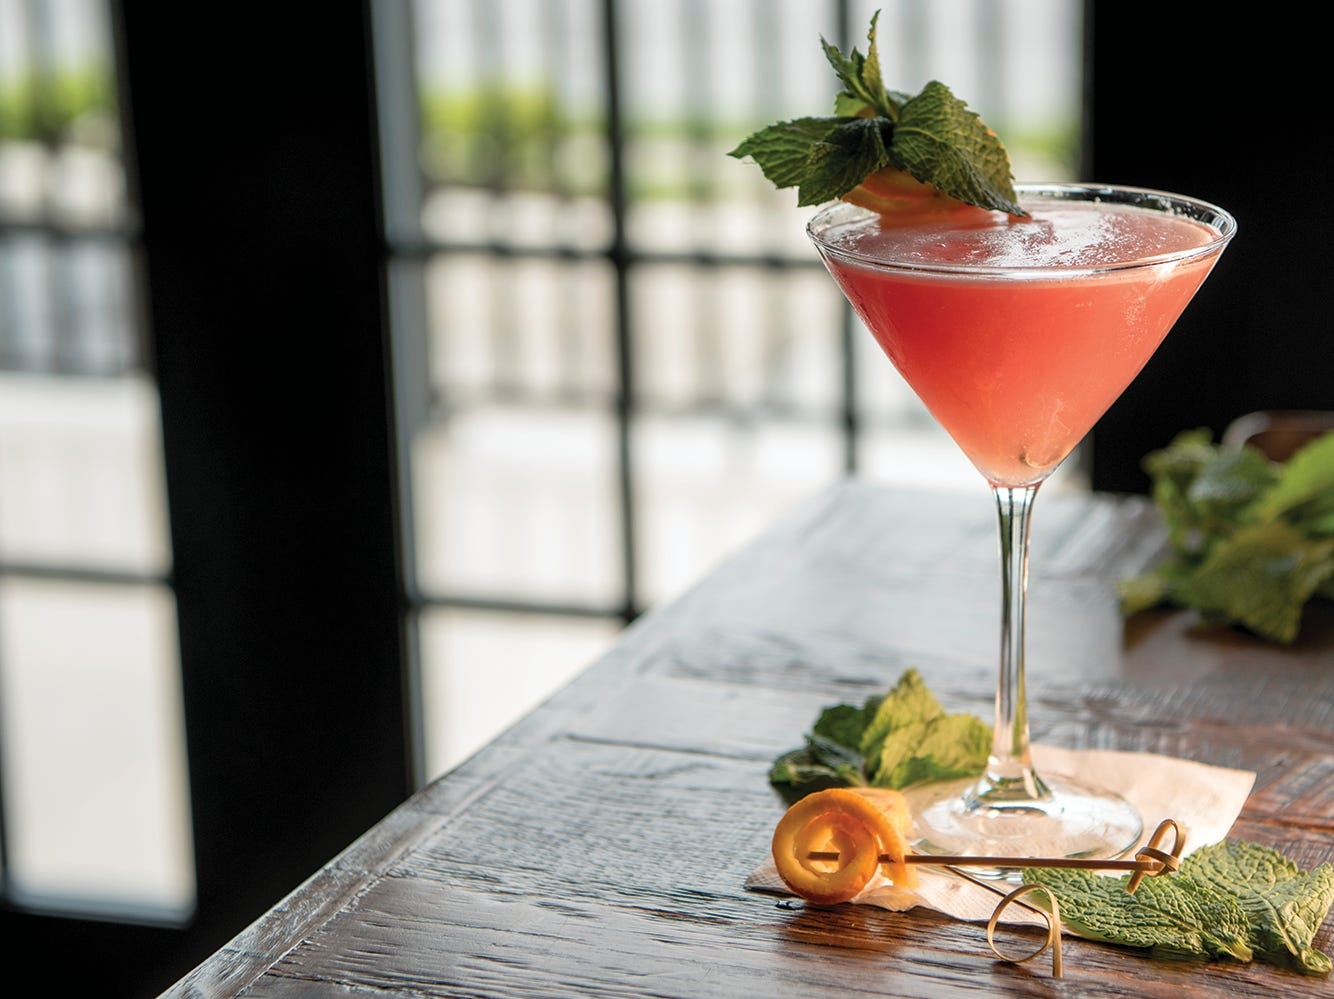 The French Hill Cosmo at Maggie's Town Tavern in Wayne, NJ shown on Thursday May 31, 2018.